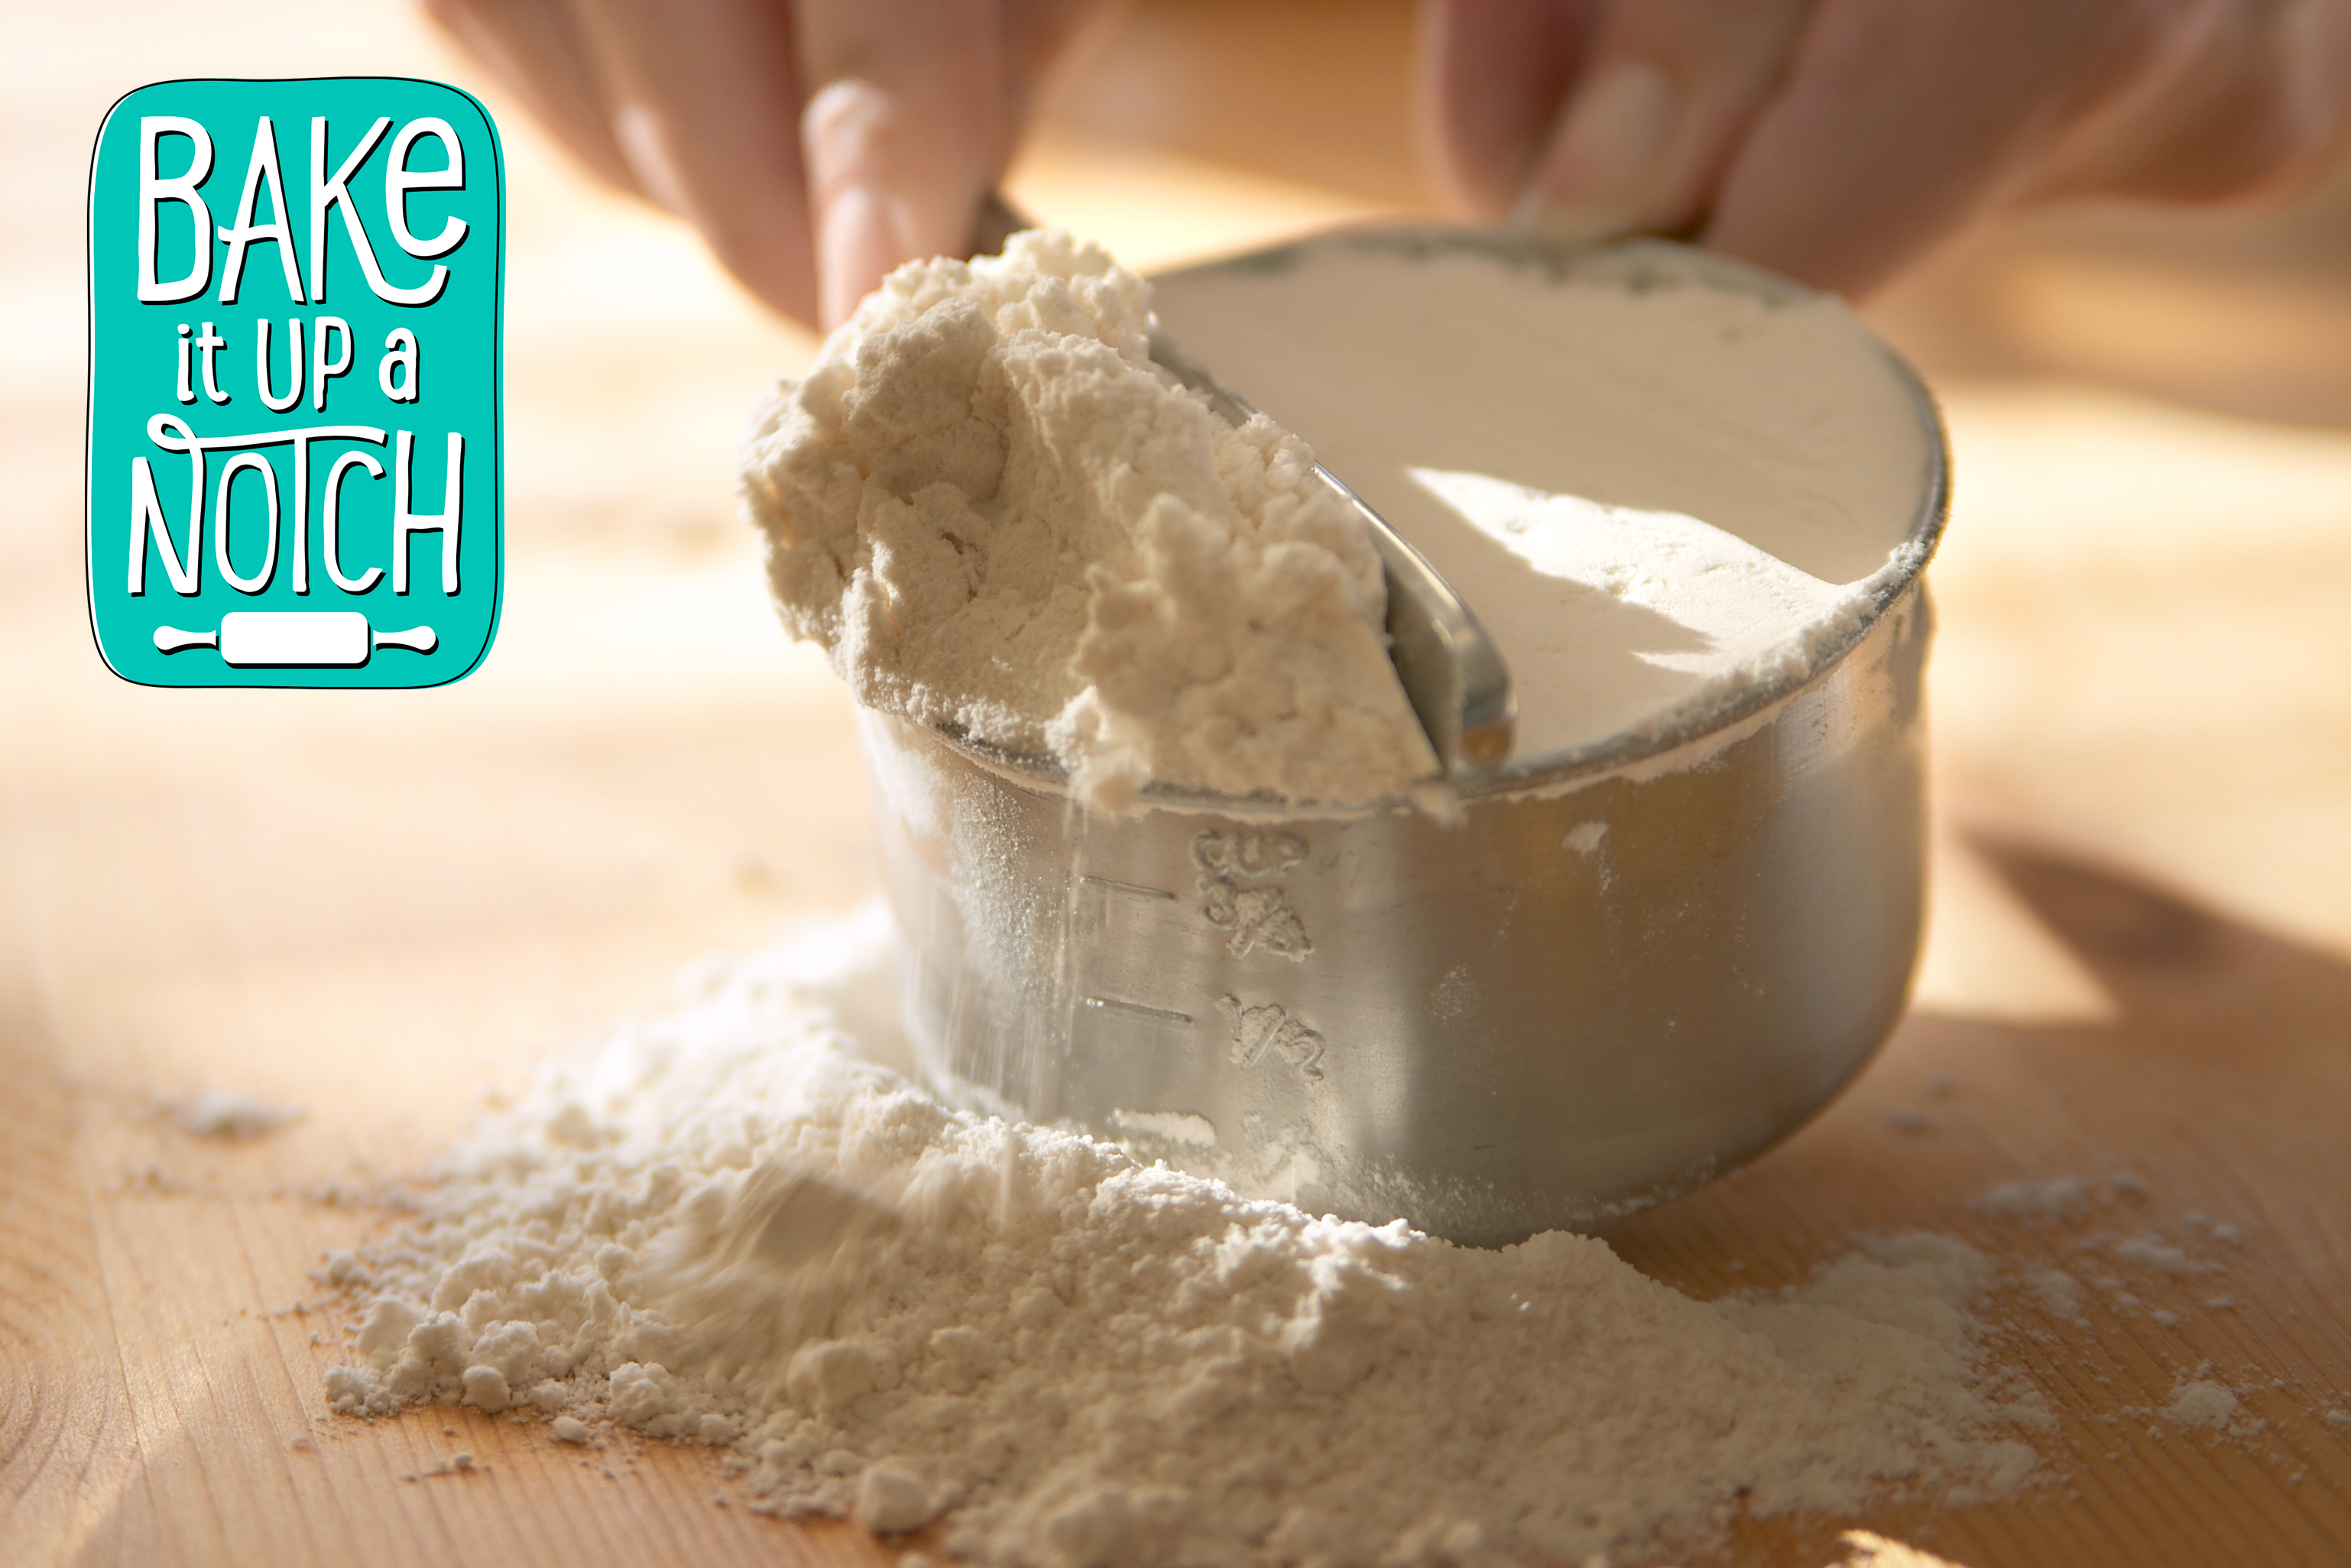 leveling flour in measuring cup